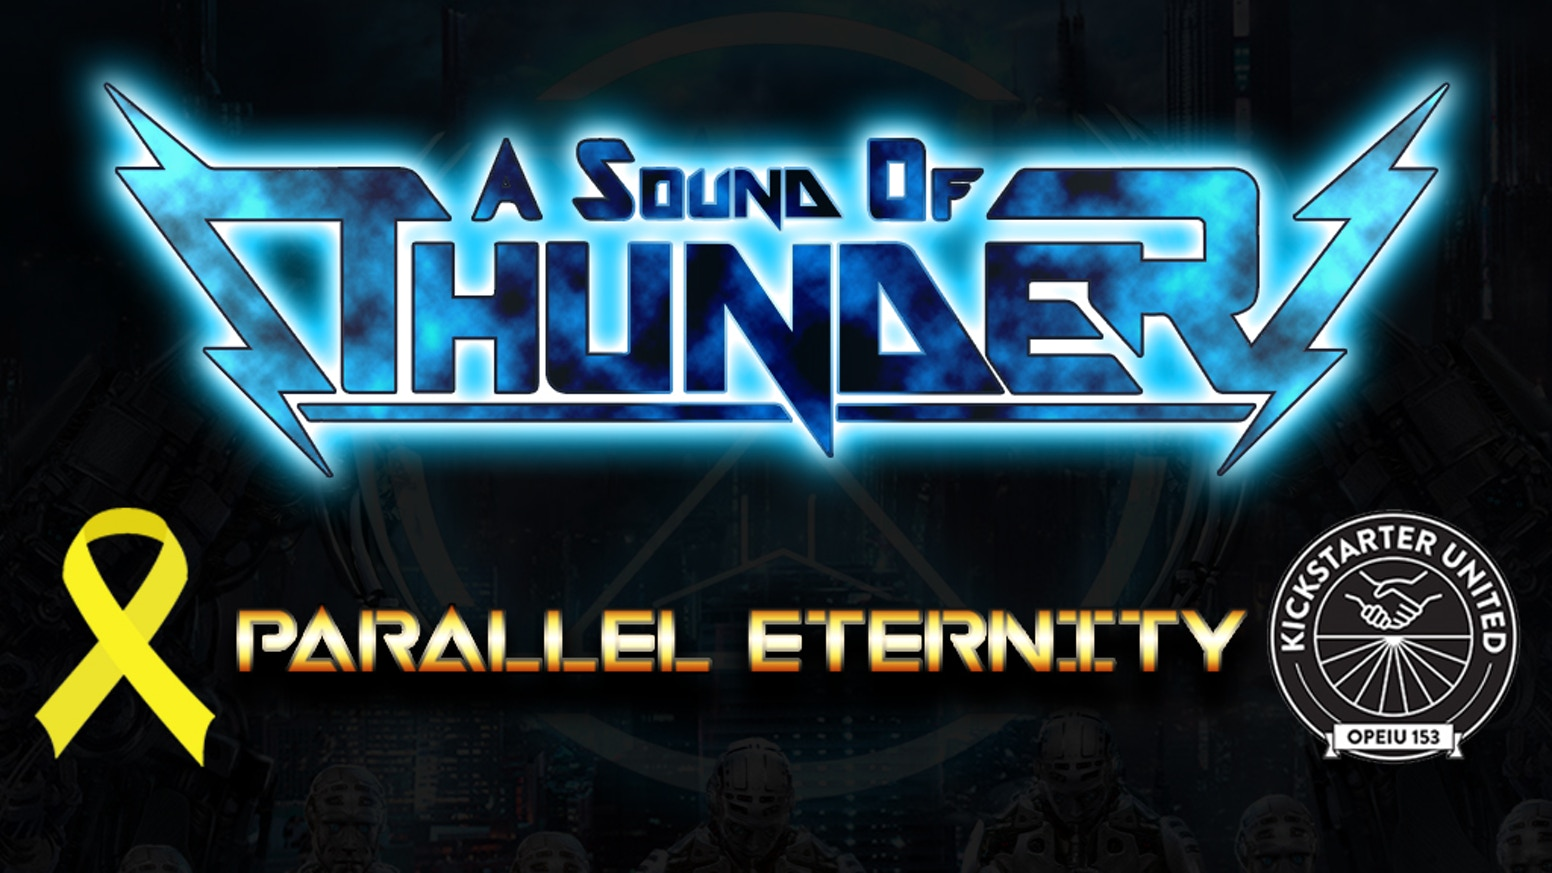 Parallel Eternity, an orchestral metal double-album celebrating ten years of A Sound of Thunder and featuring composer Brad Charles.